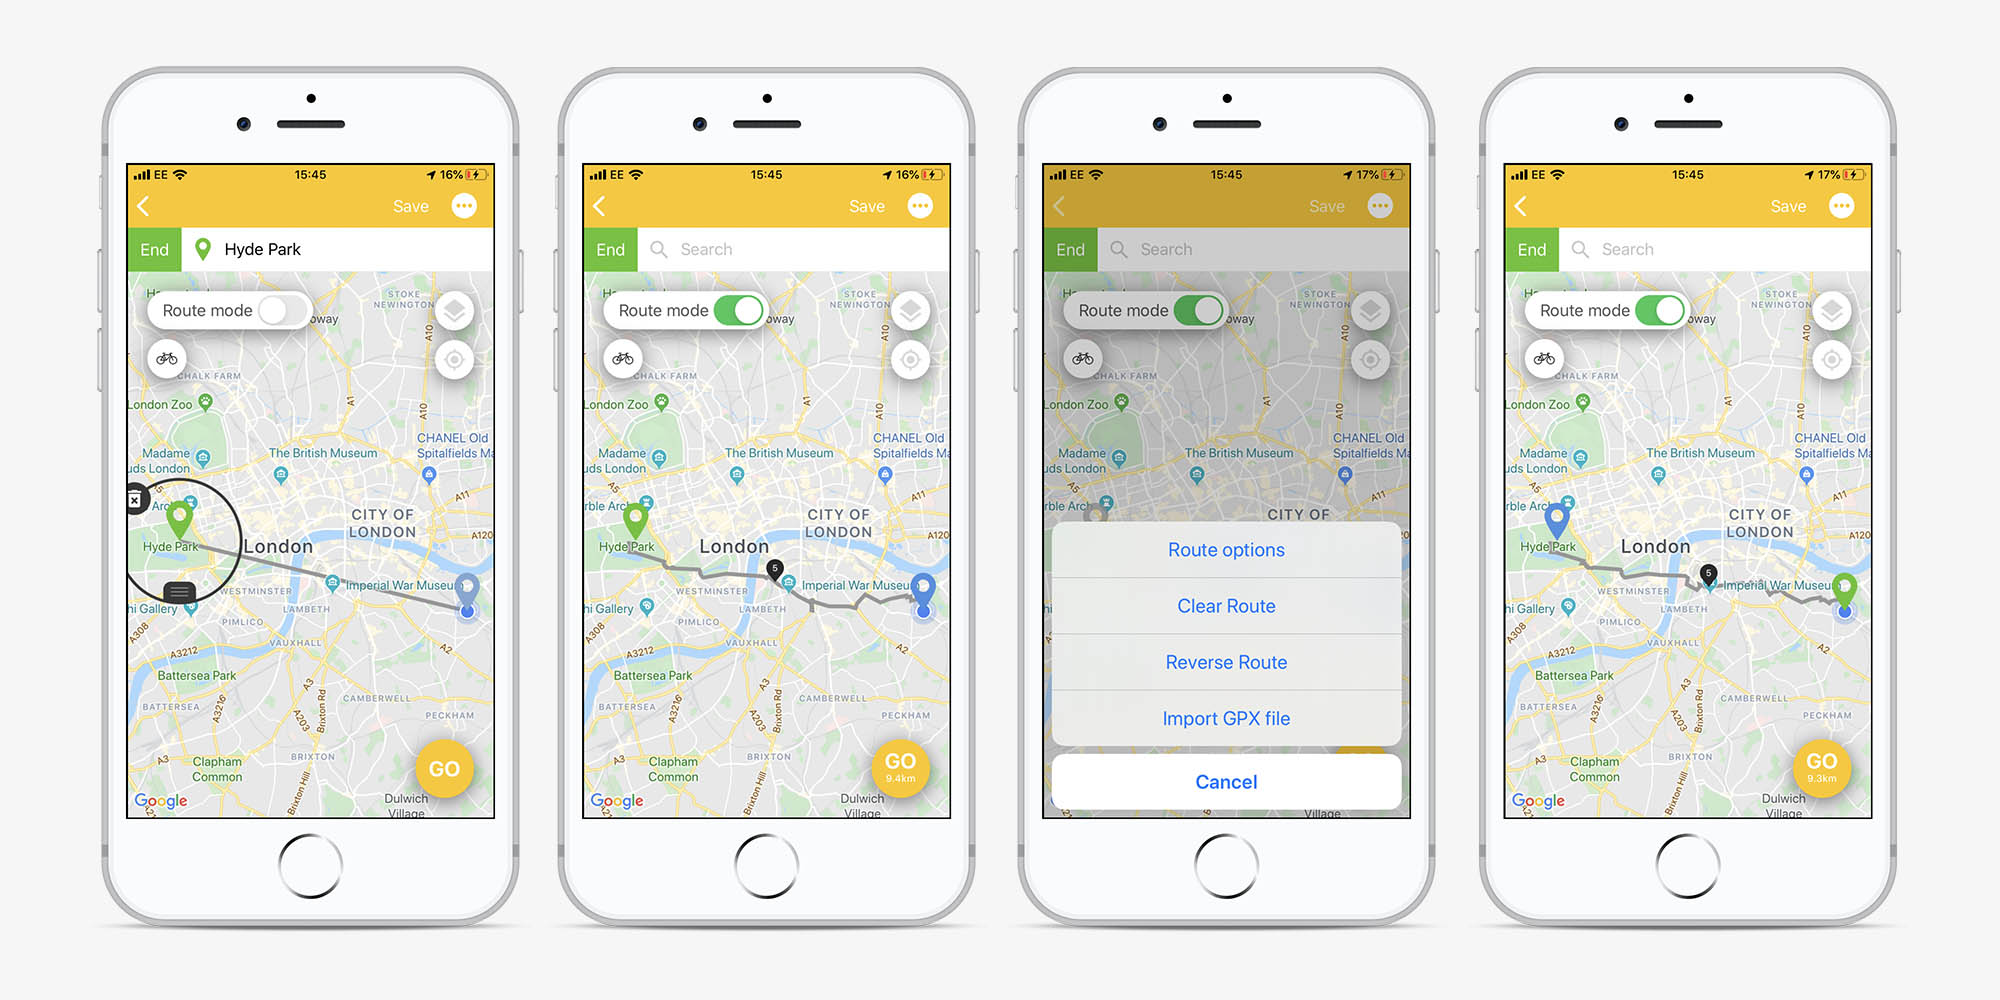 Screens showing the process of reversing a route in the Beeline app